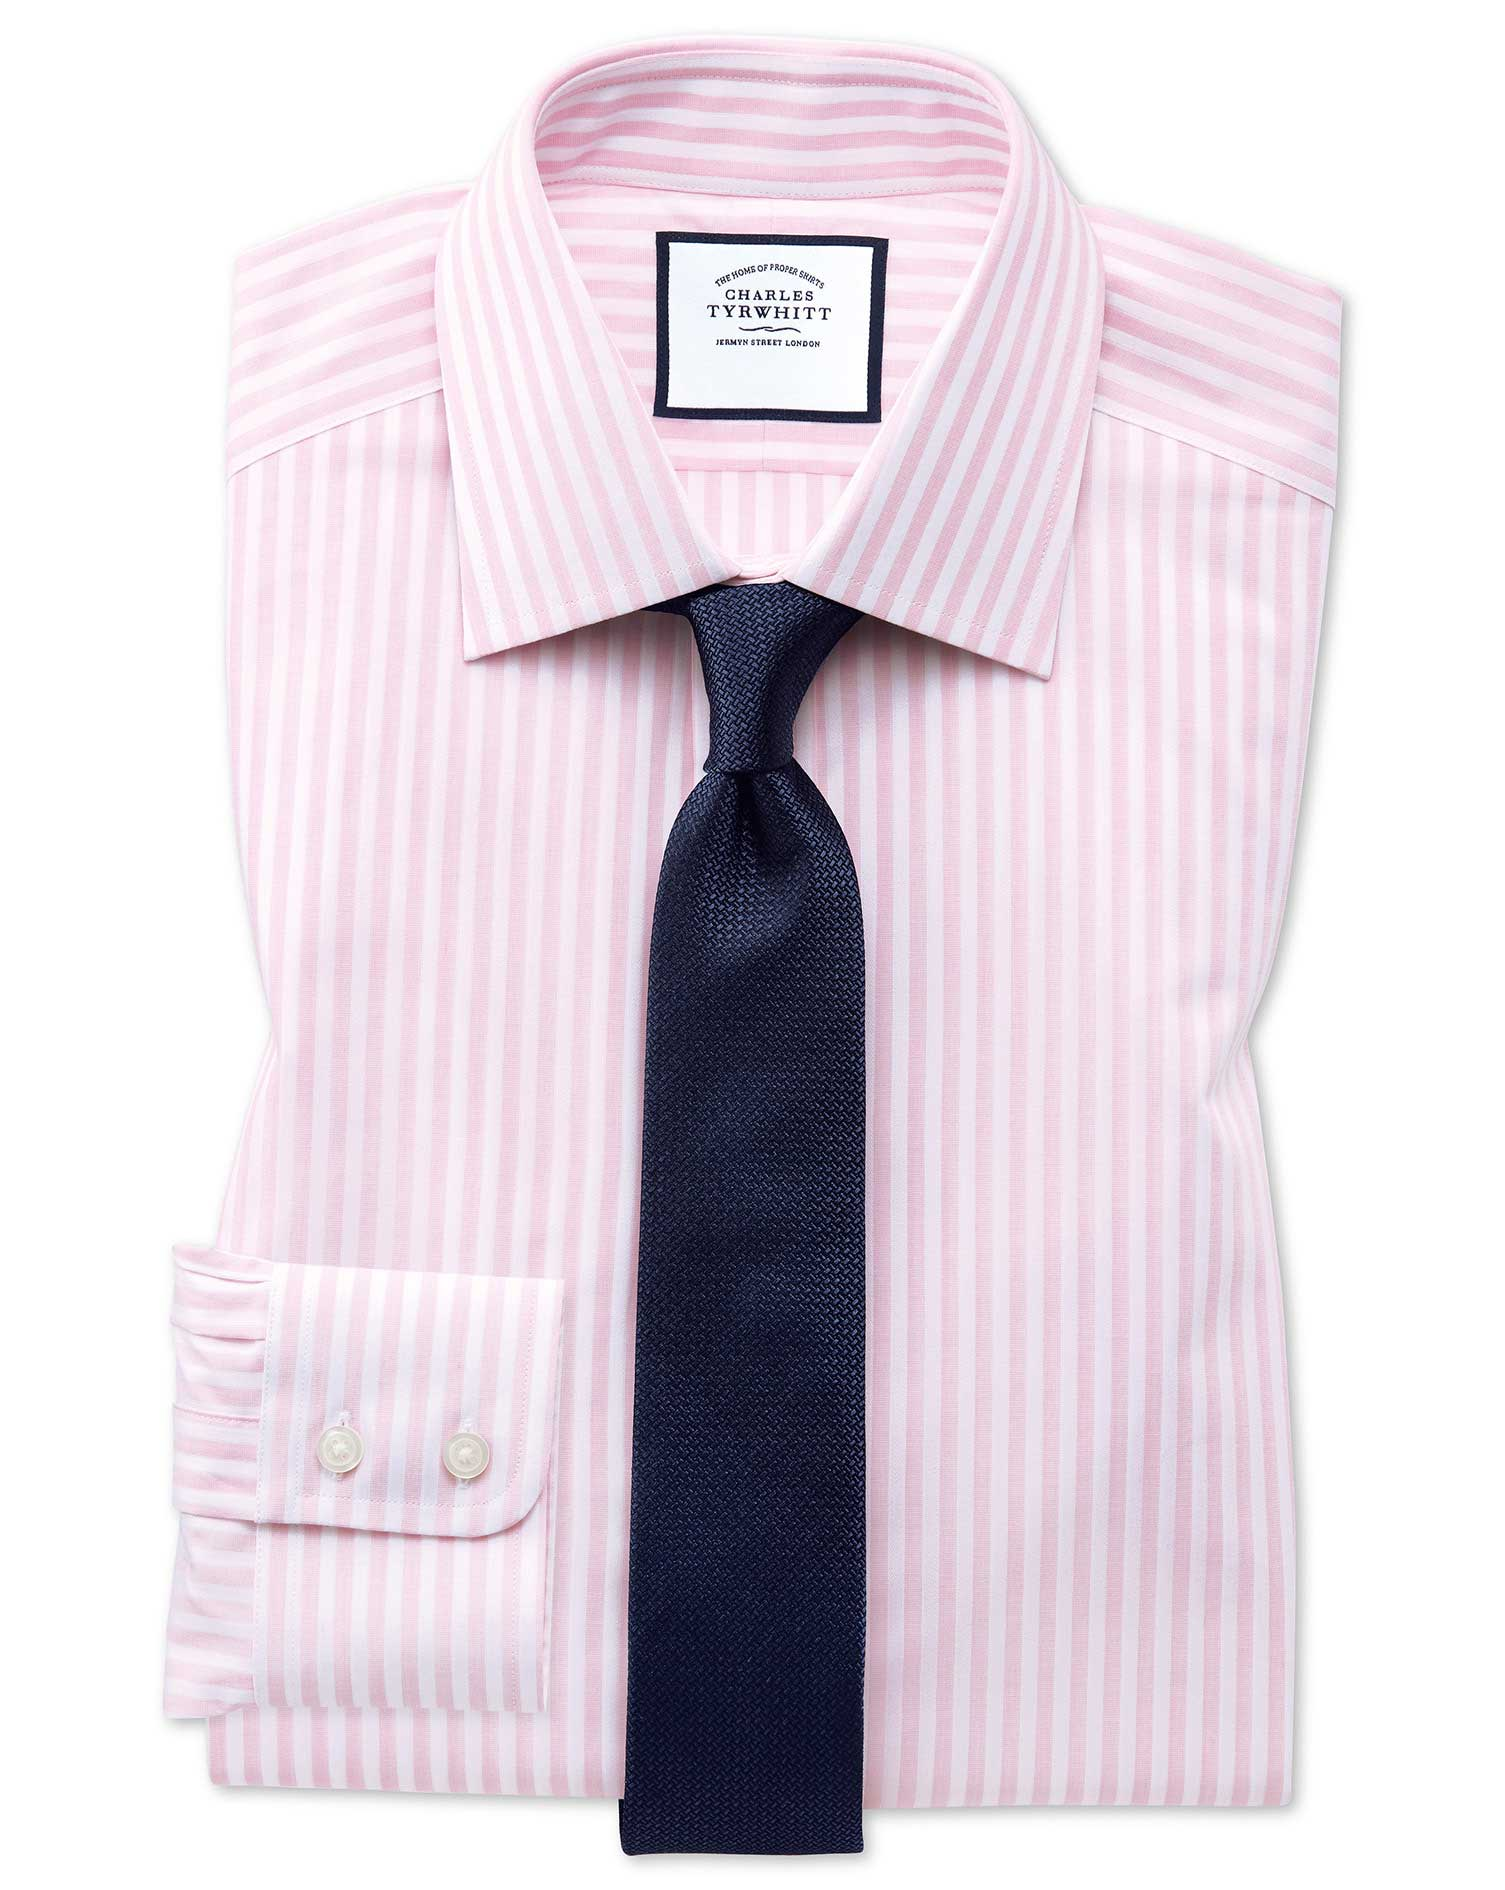 Extra Slim Fit Pink and White Dobby Textured Stripe Cotton Formal Shirt Single Cuff Size 16/33 by Ch